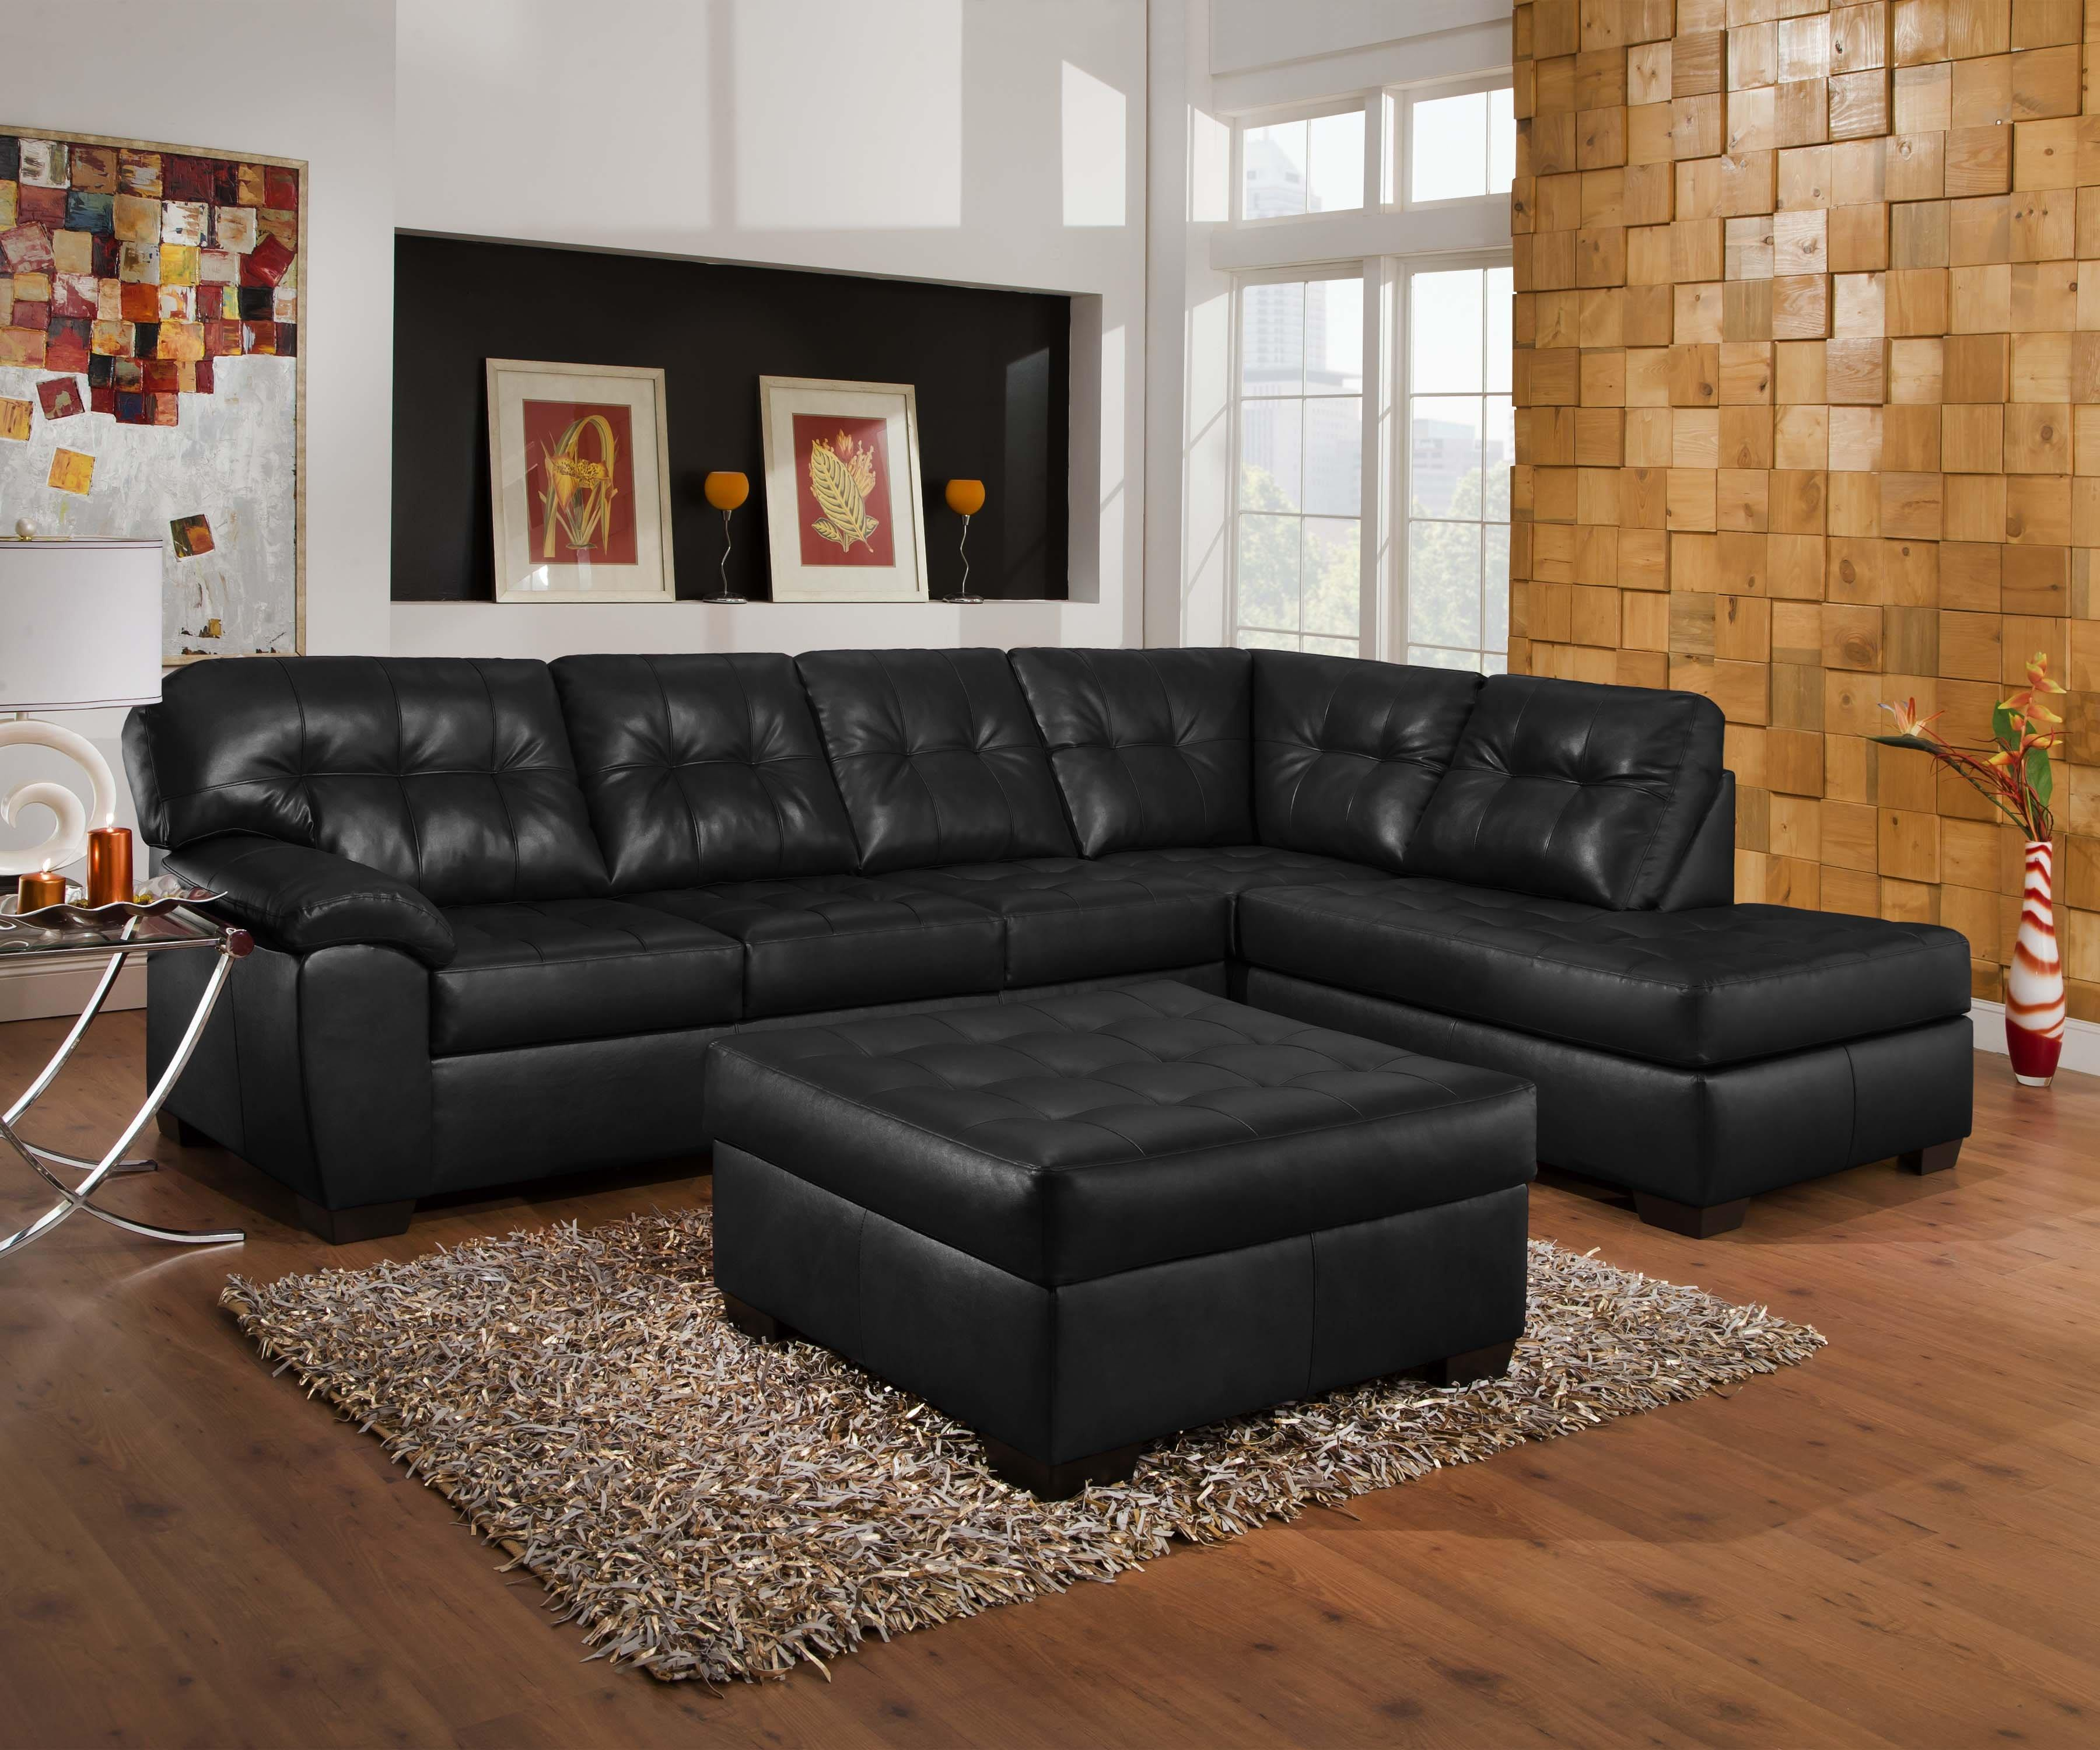 9568 Casual Sectional Sofa With Tufted Seat Back By United Furniture Industries At Miskelly Furniture